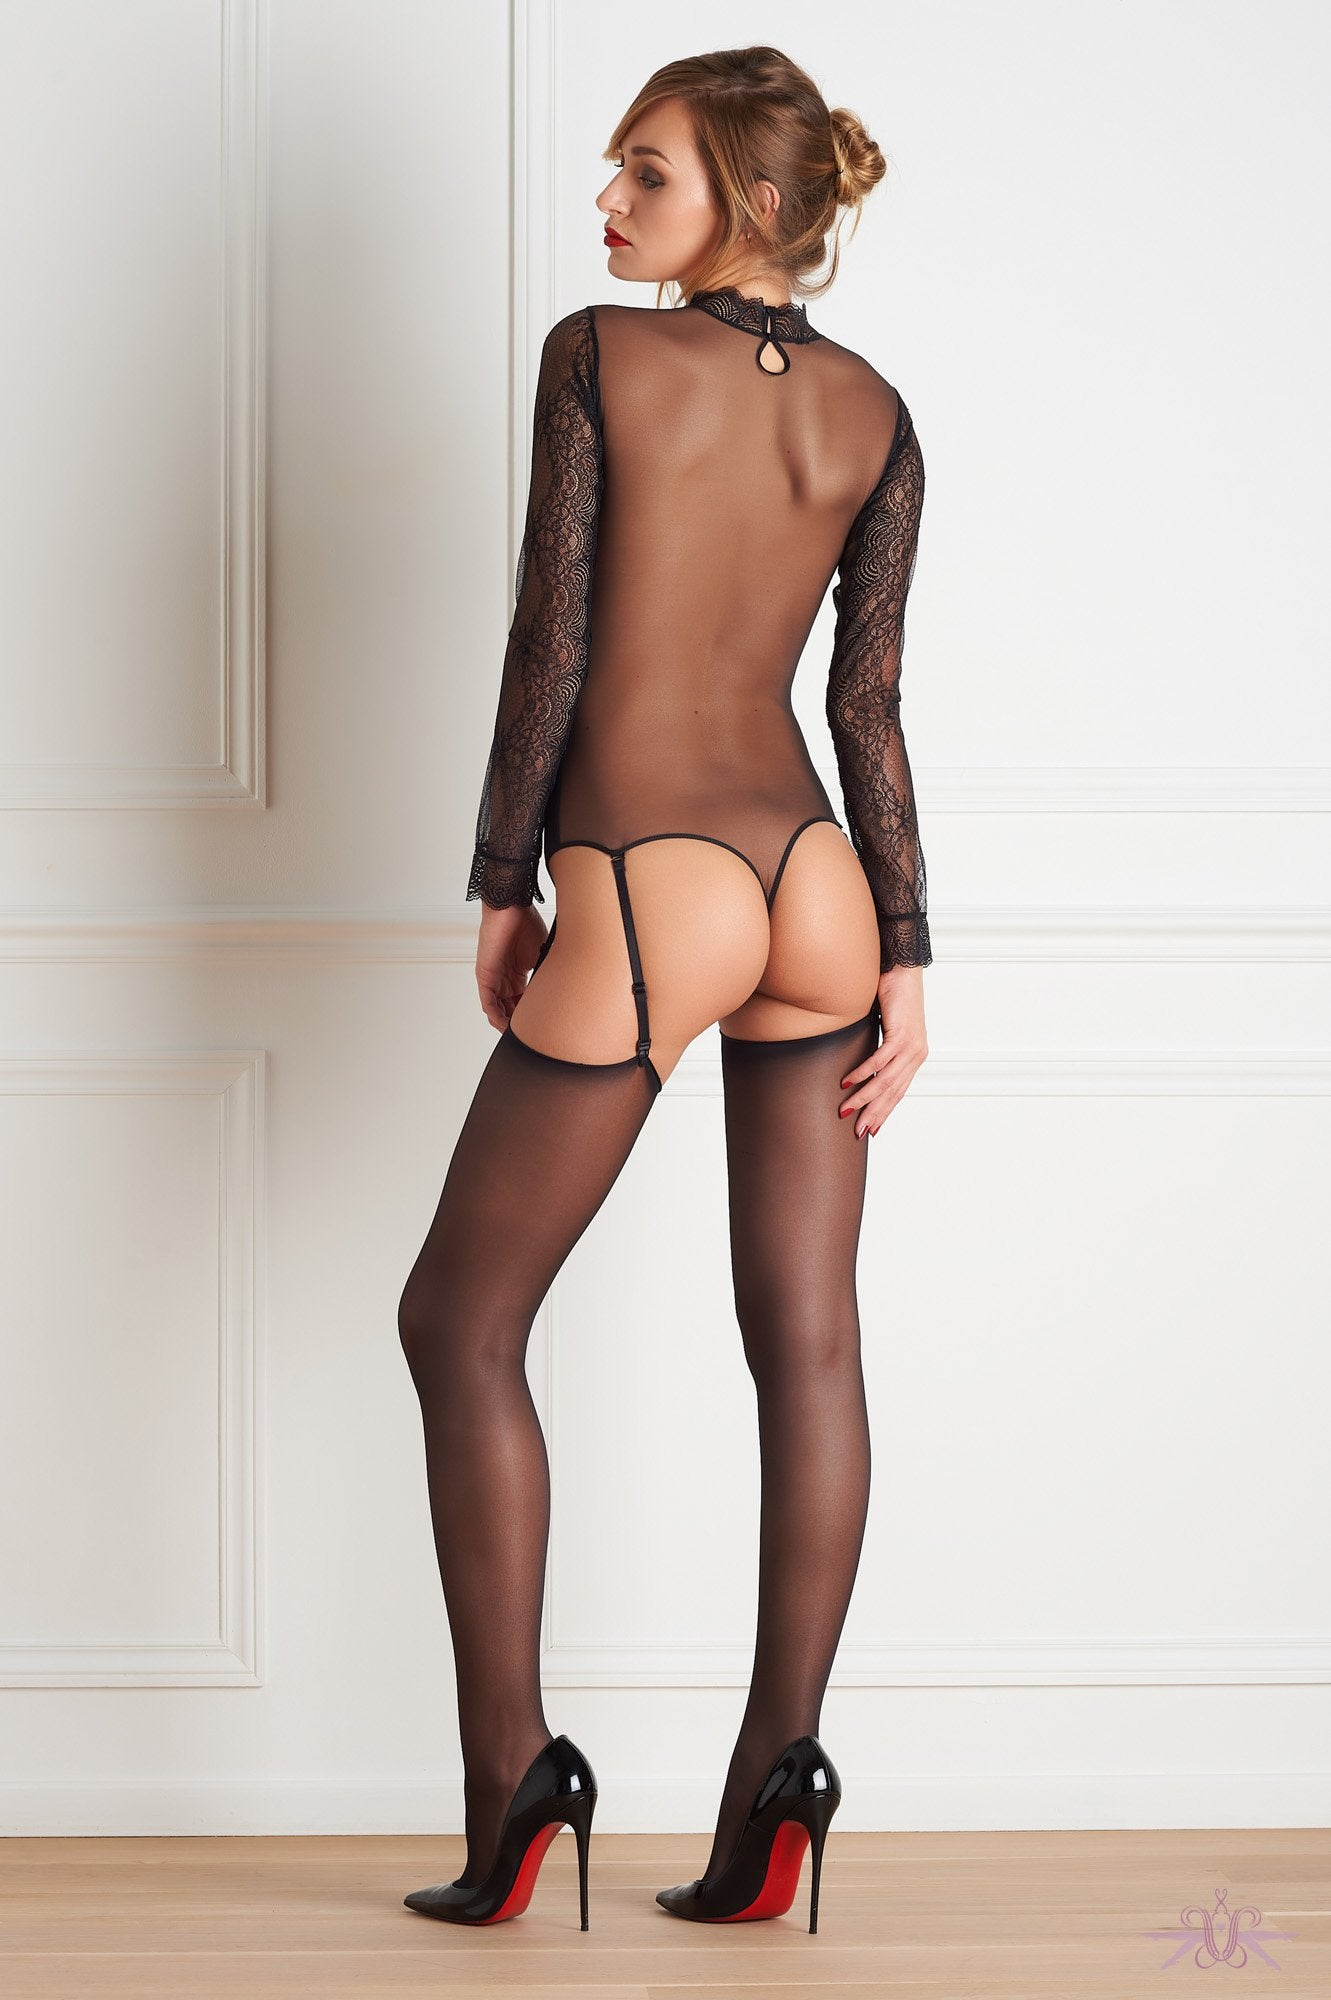 Maison Close Sheer Cut and Curled Stockings